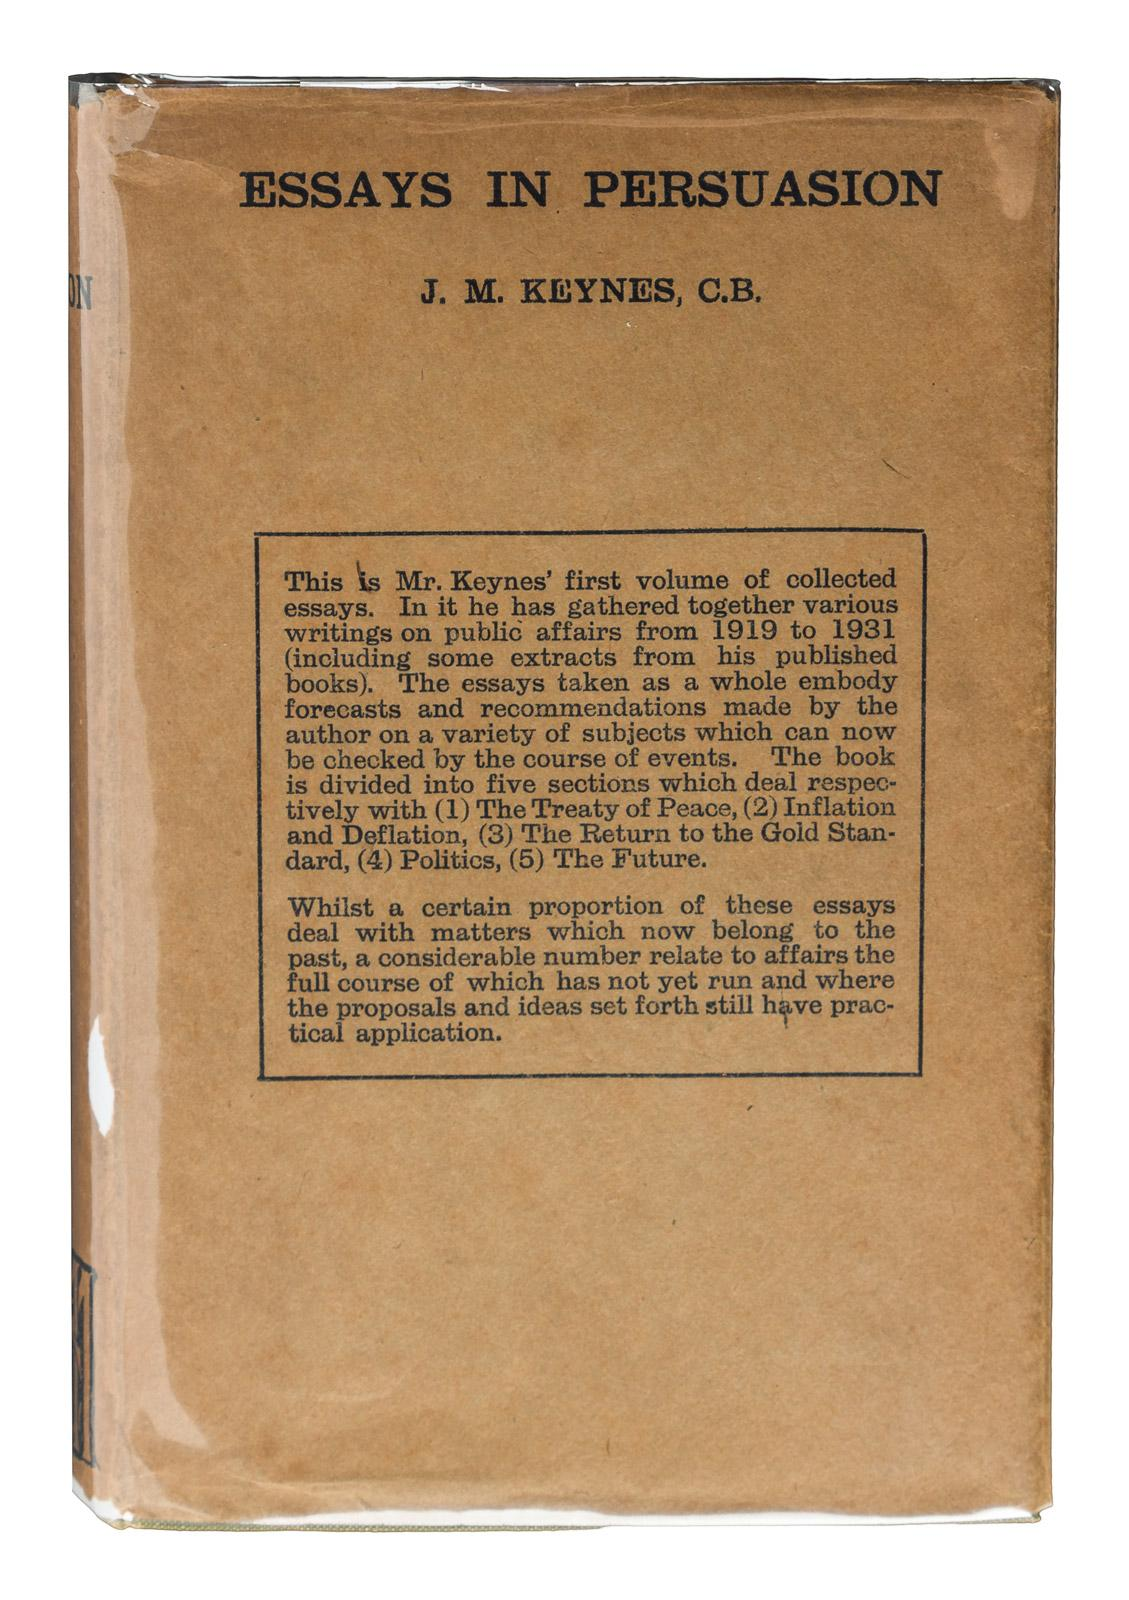 015 237551 0 Essay Example Essays In Remarkable Persuasion Keynes 1931 Wikipedia Summary Full